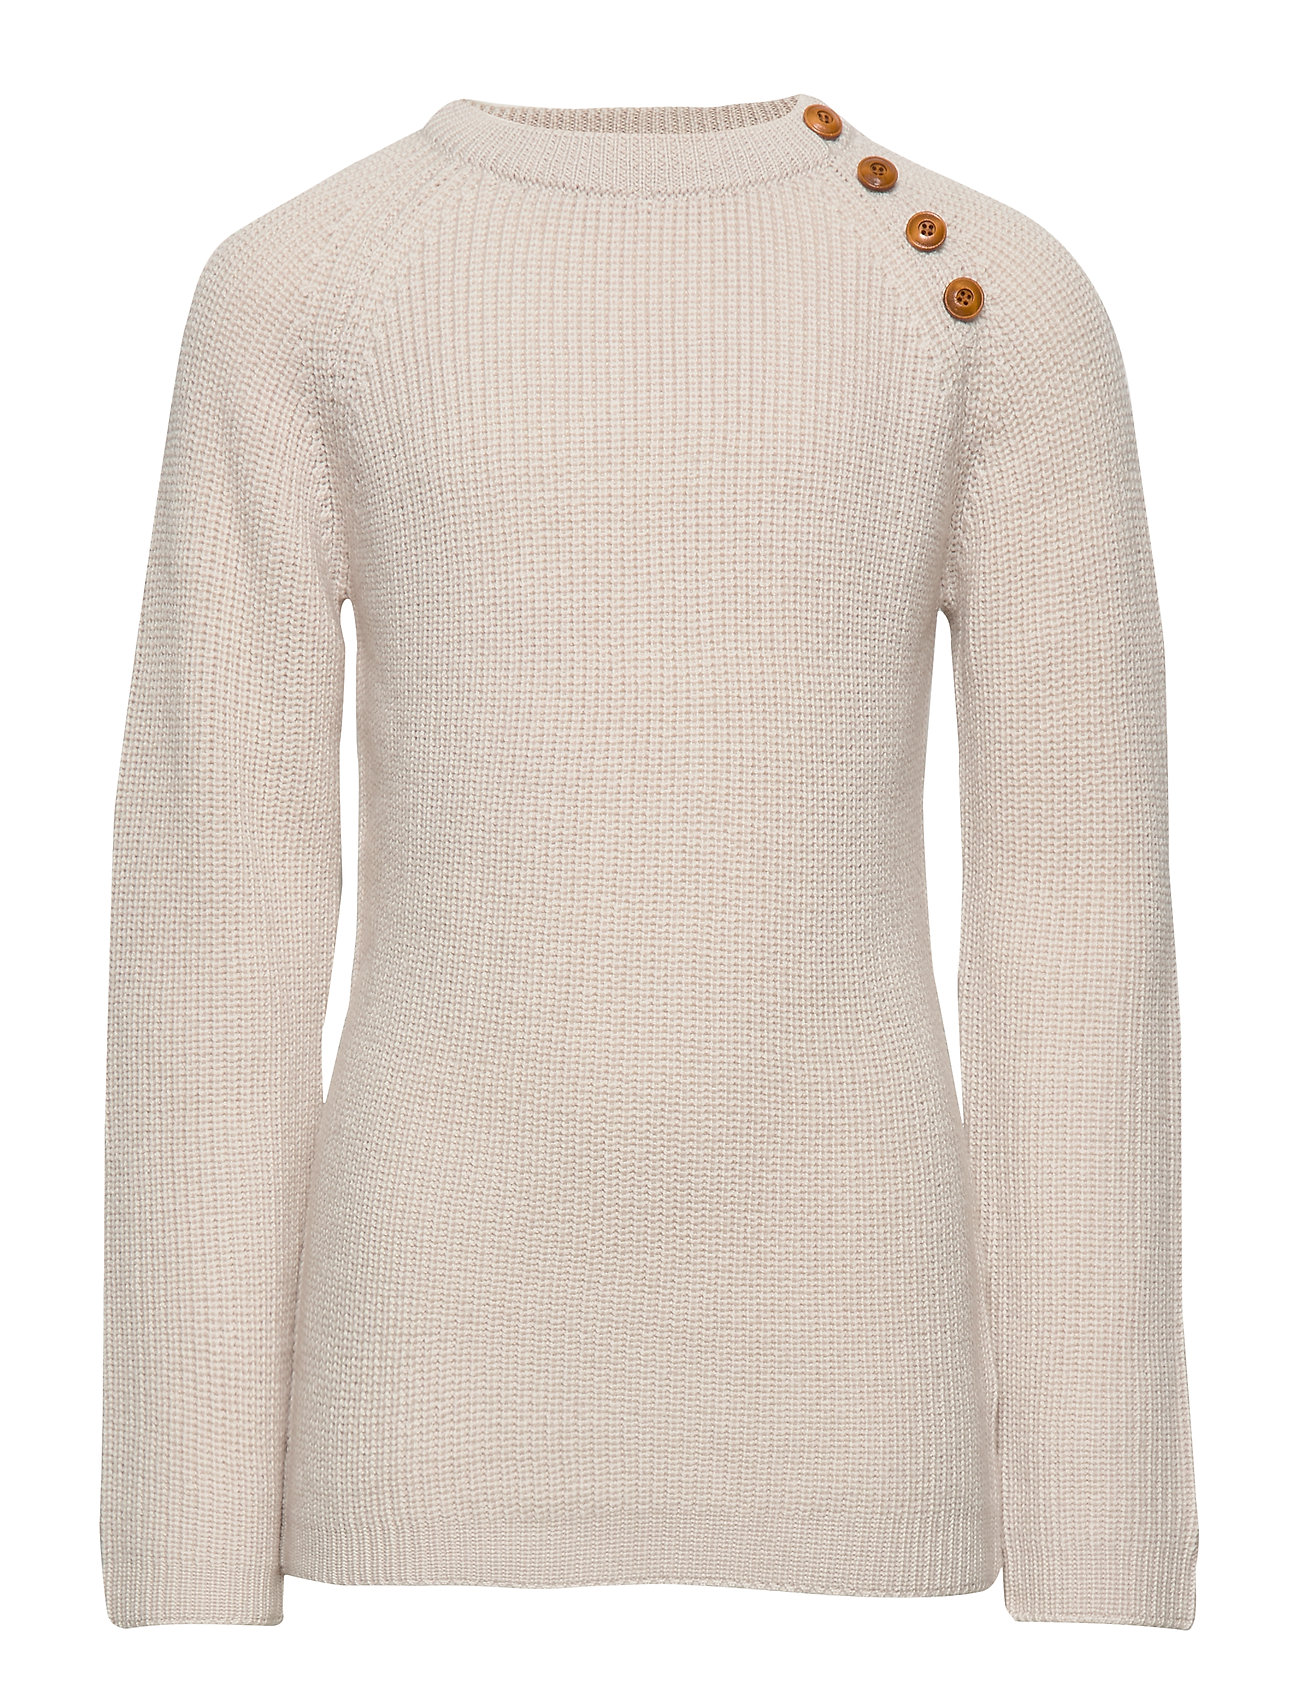 Image of Rib Sweater Pullover Striktrøje Creme FUB (3406216715)